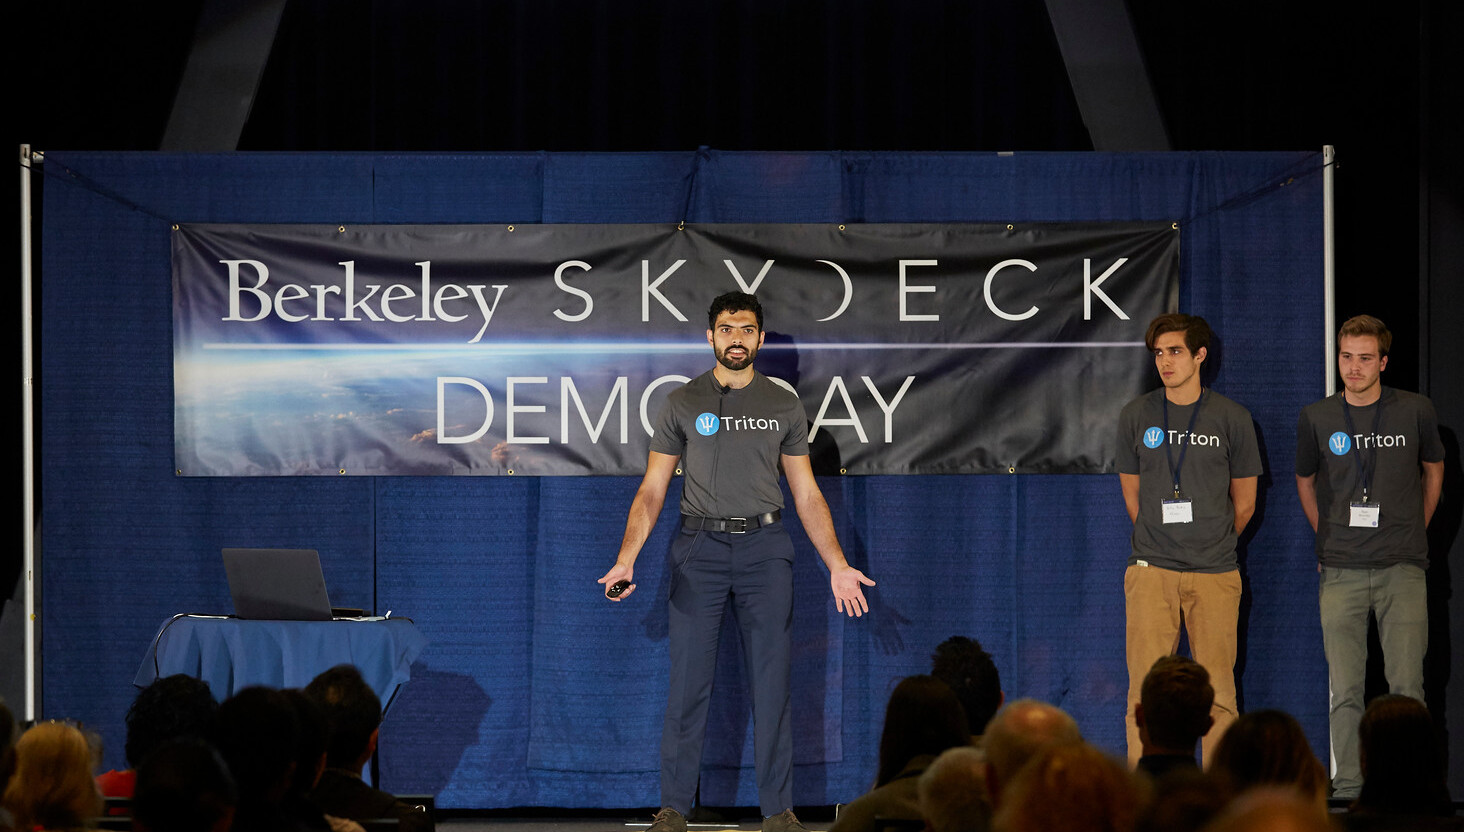 Simba speaking in front of a crowd at UC Berkeley Skydeck's Demo Day